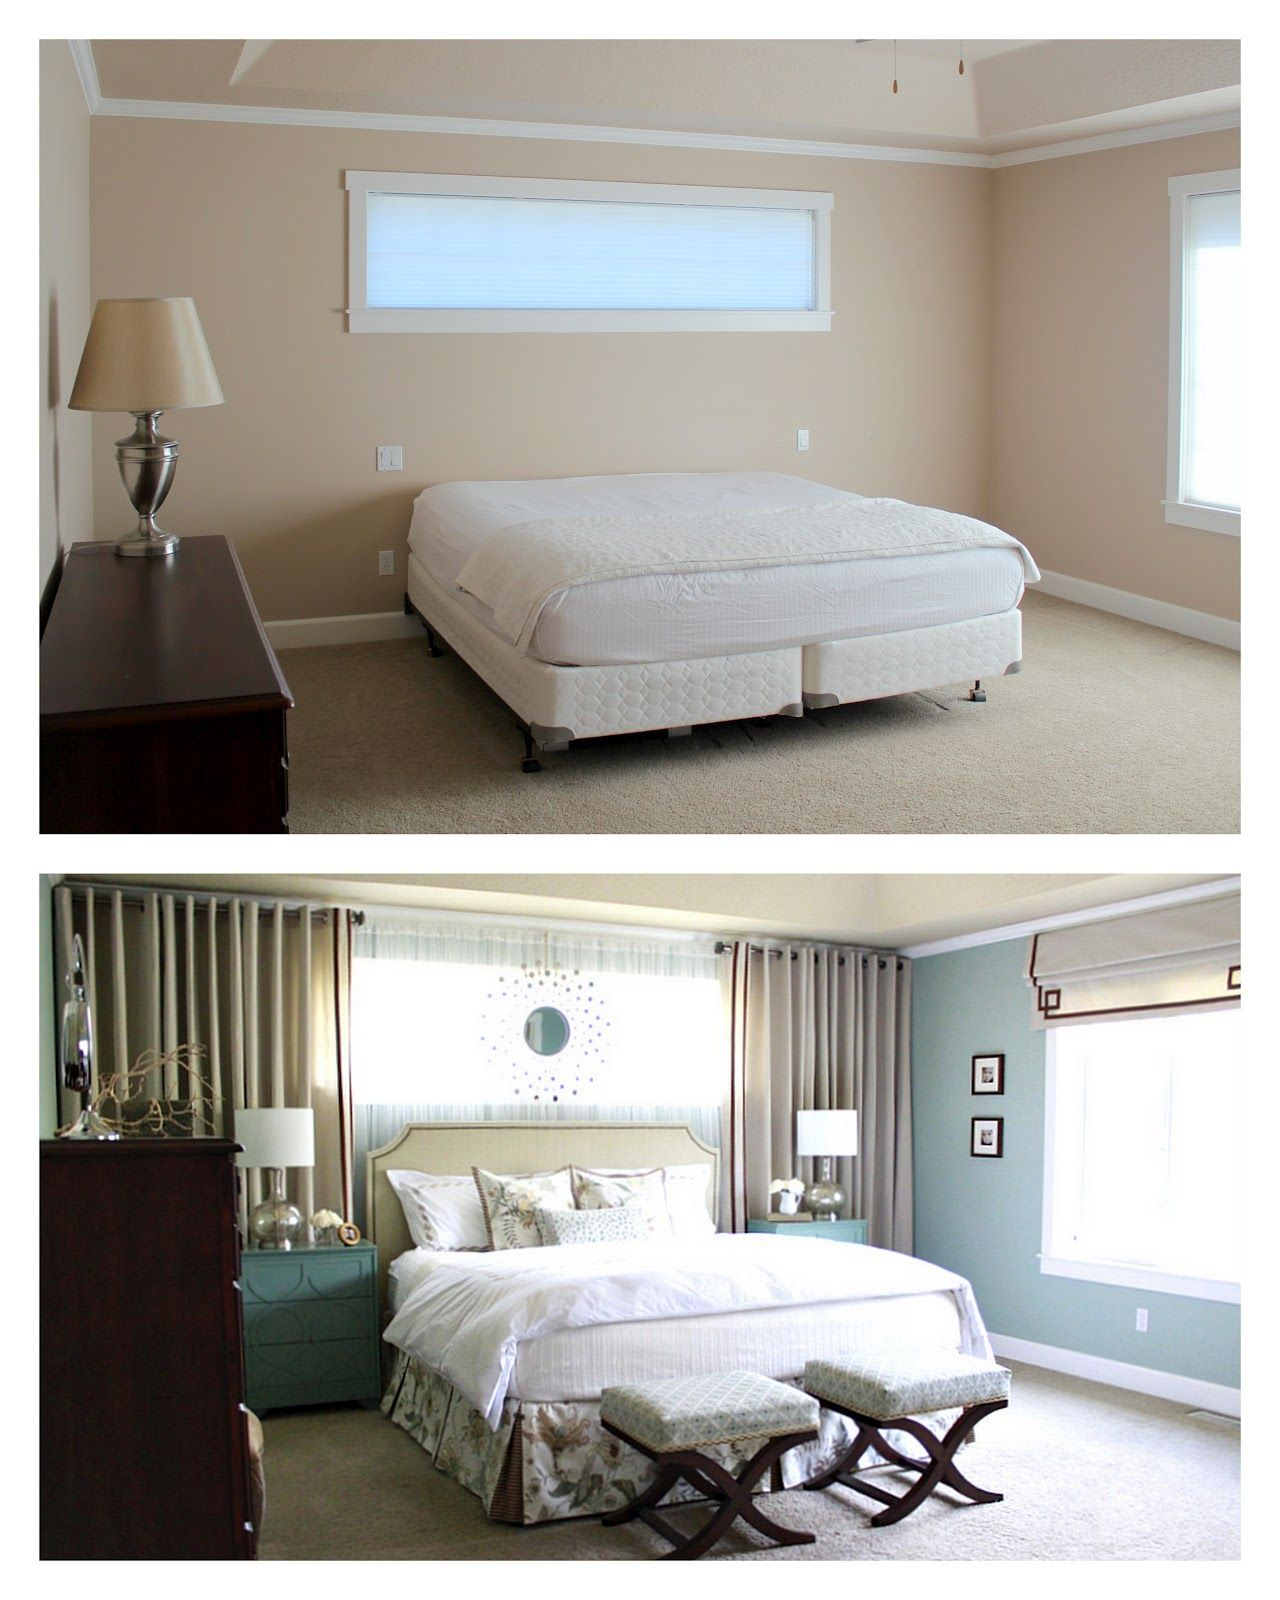 Master bedroom reveal curtains around bed mirrors above long dresser wall colors ladi Master bedroom art above bed